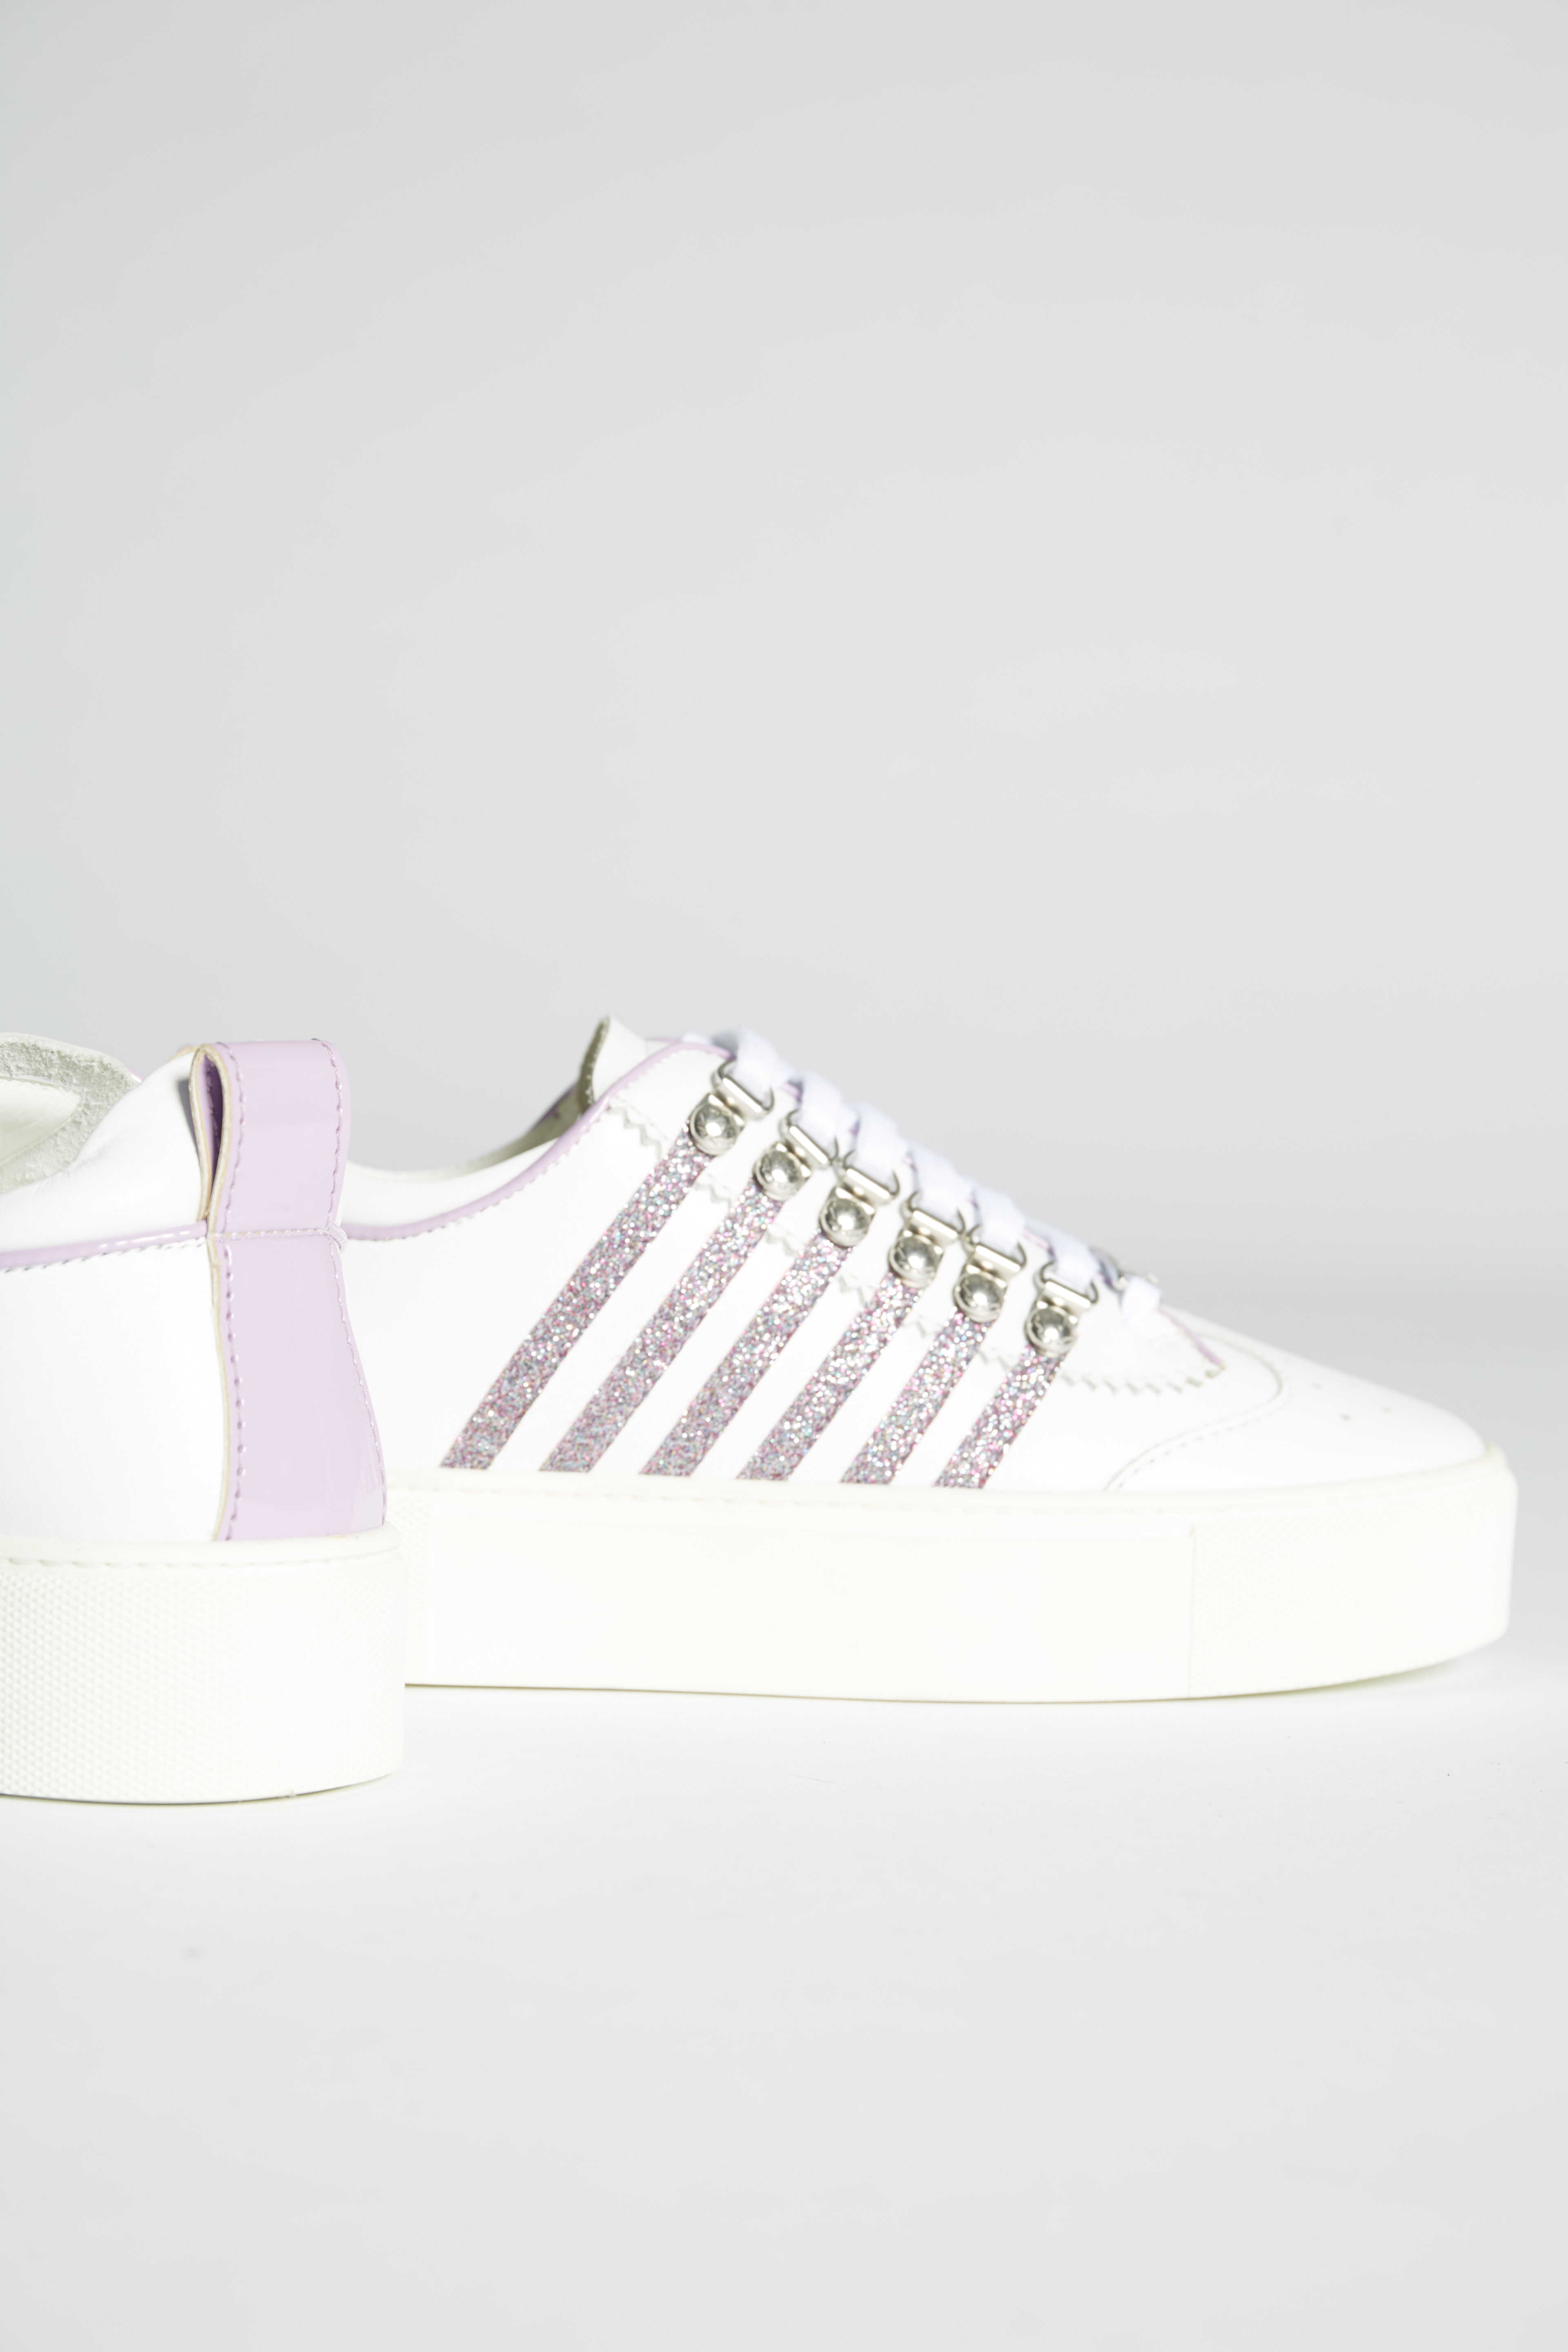 Dsquared2 Womens 251 Sneakers Trainers